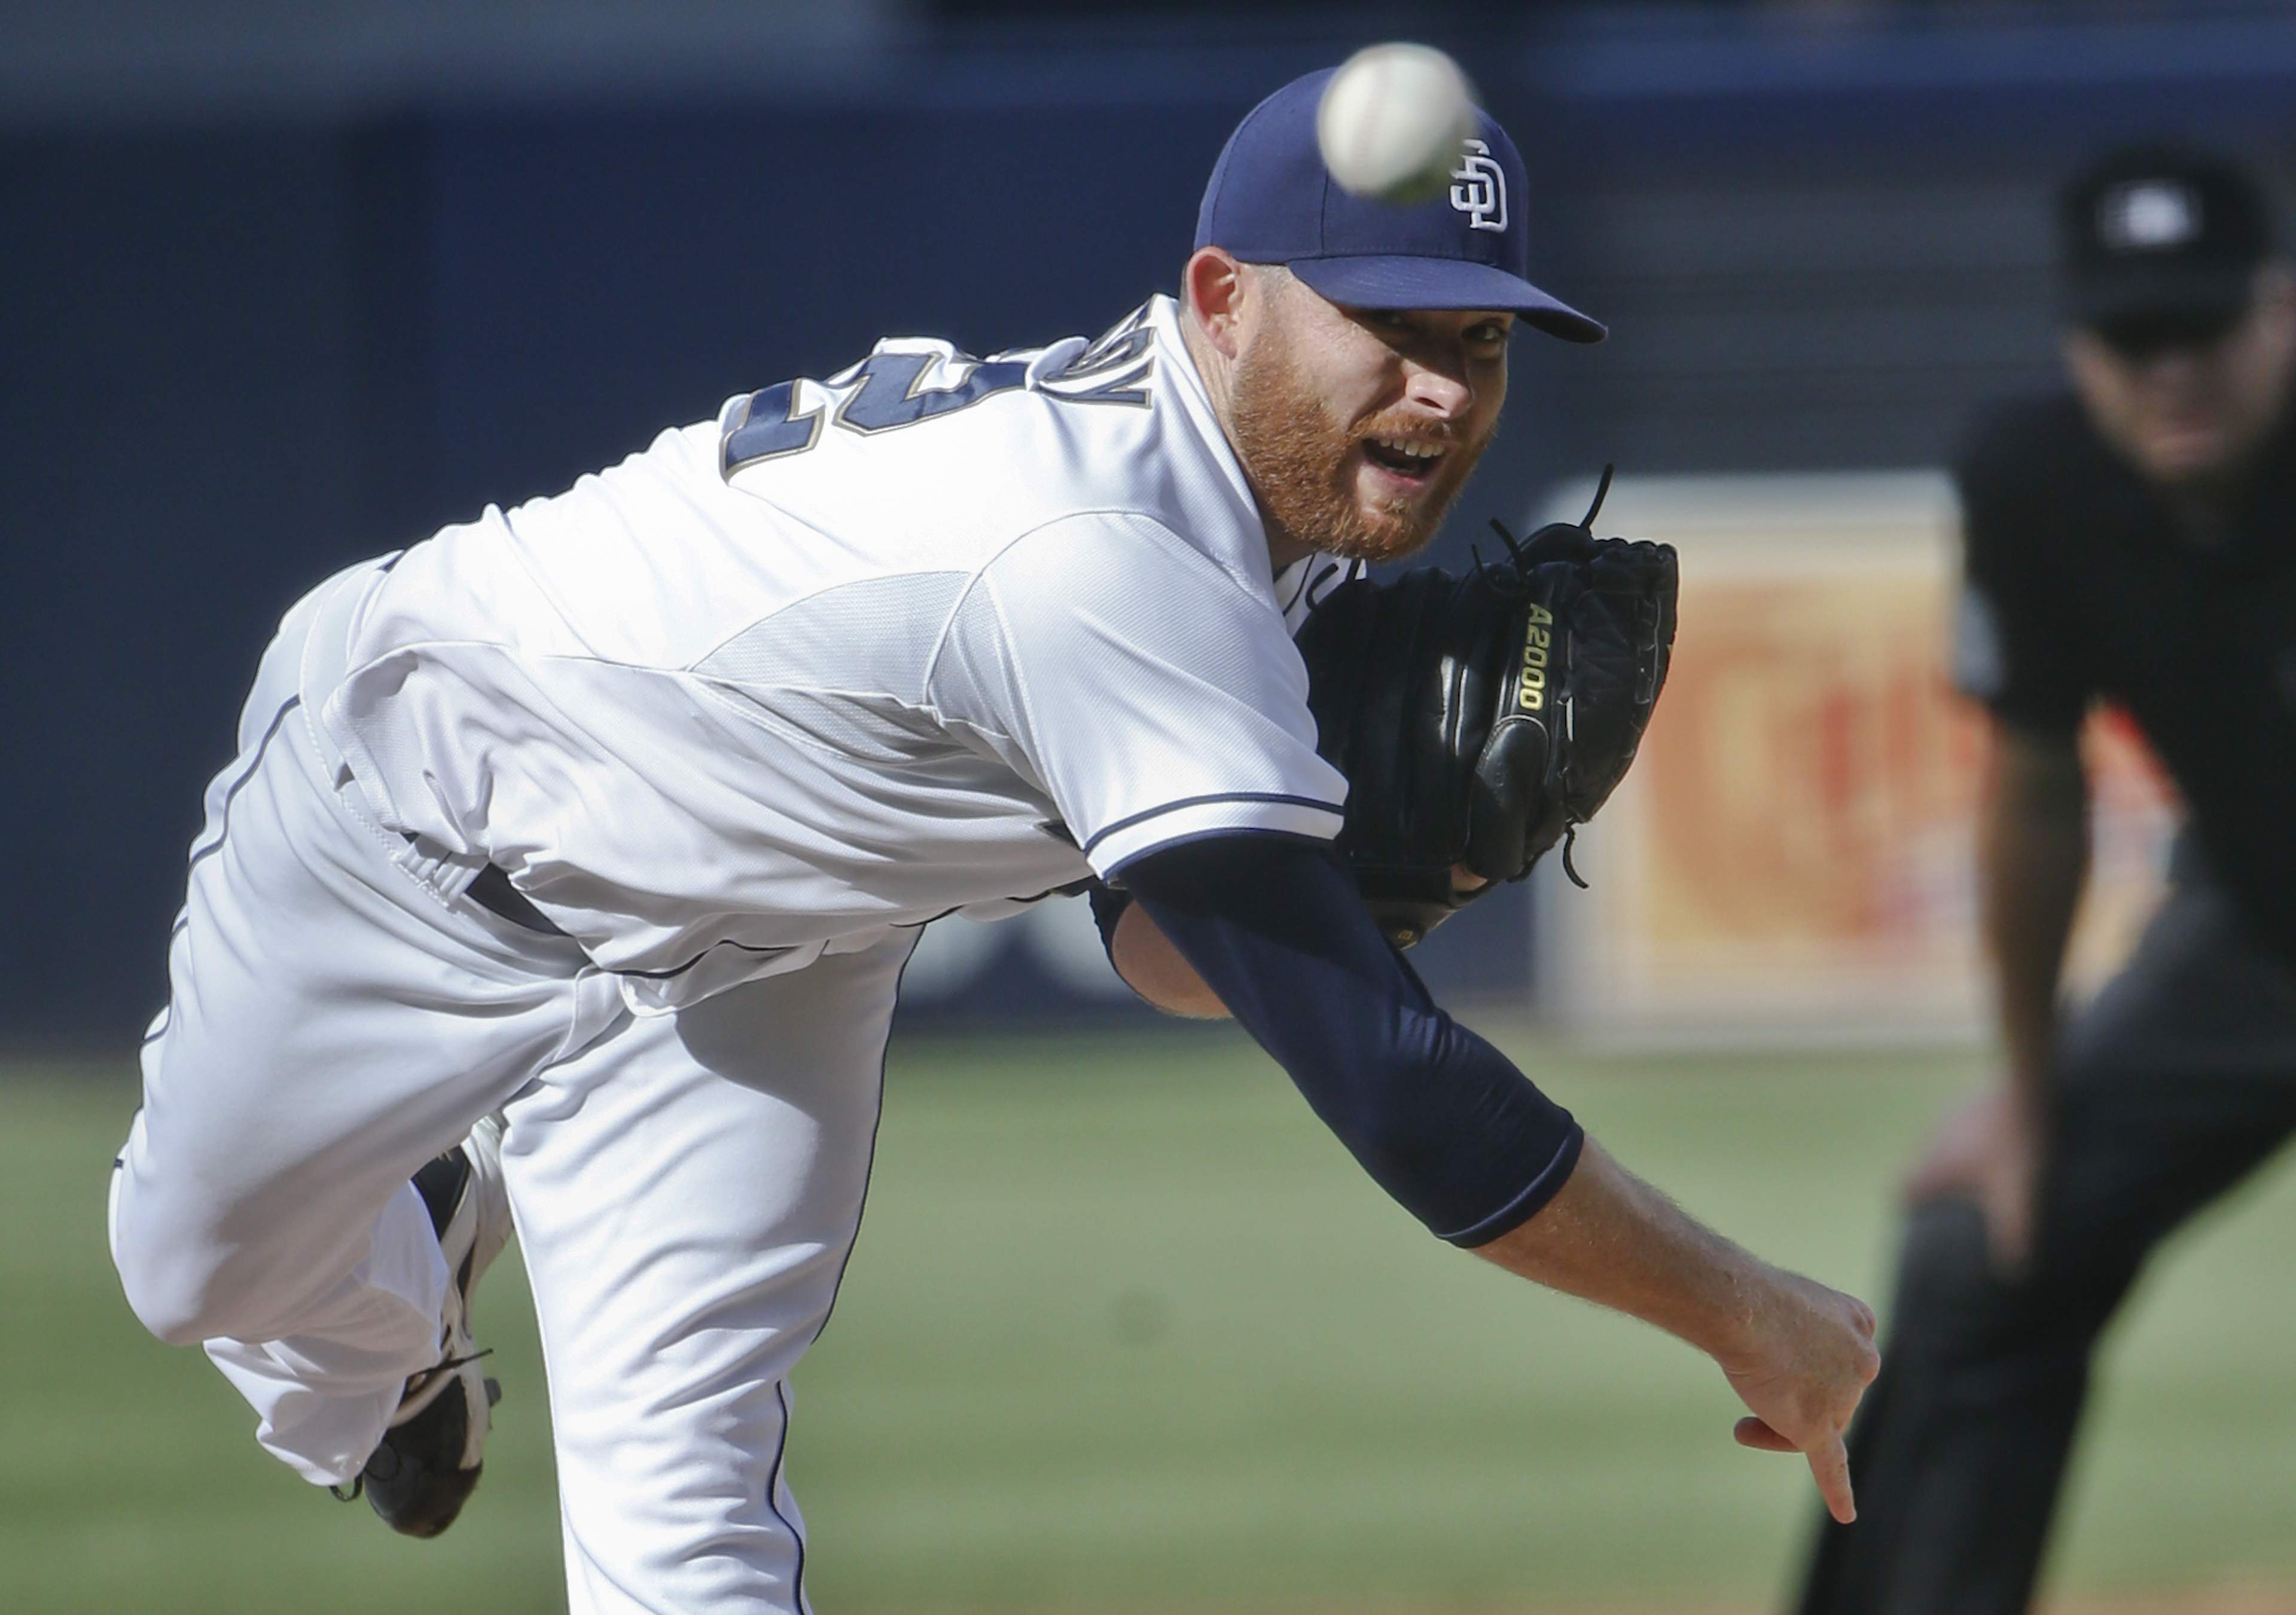 FILE - In this Oct. 1, 2015, file photo, San Diego Padres starting pitcher Ian Kennedy works against the Milwaukee Brewers in the first inning of a baseball game, in San Diego. The Kansas City Royals have announced their $70 million, five-year deal with K